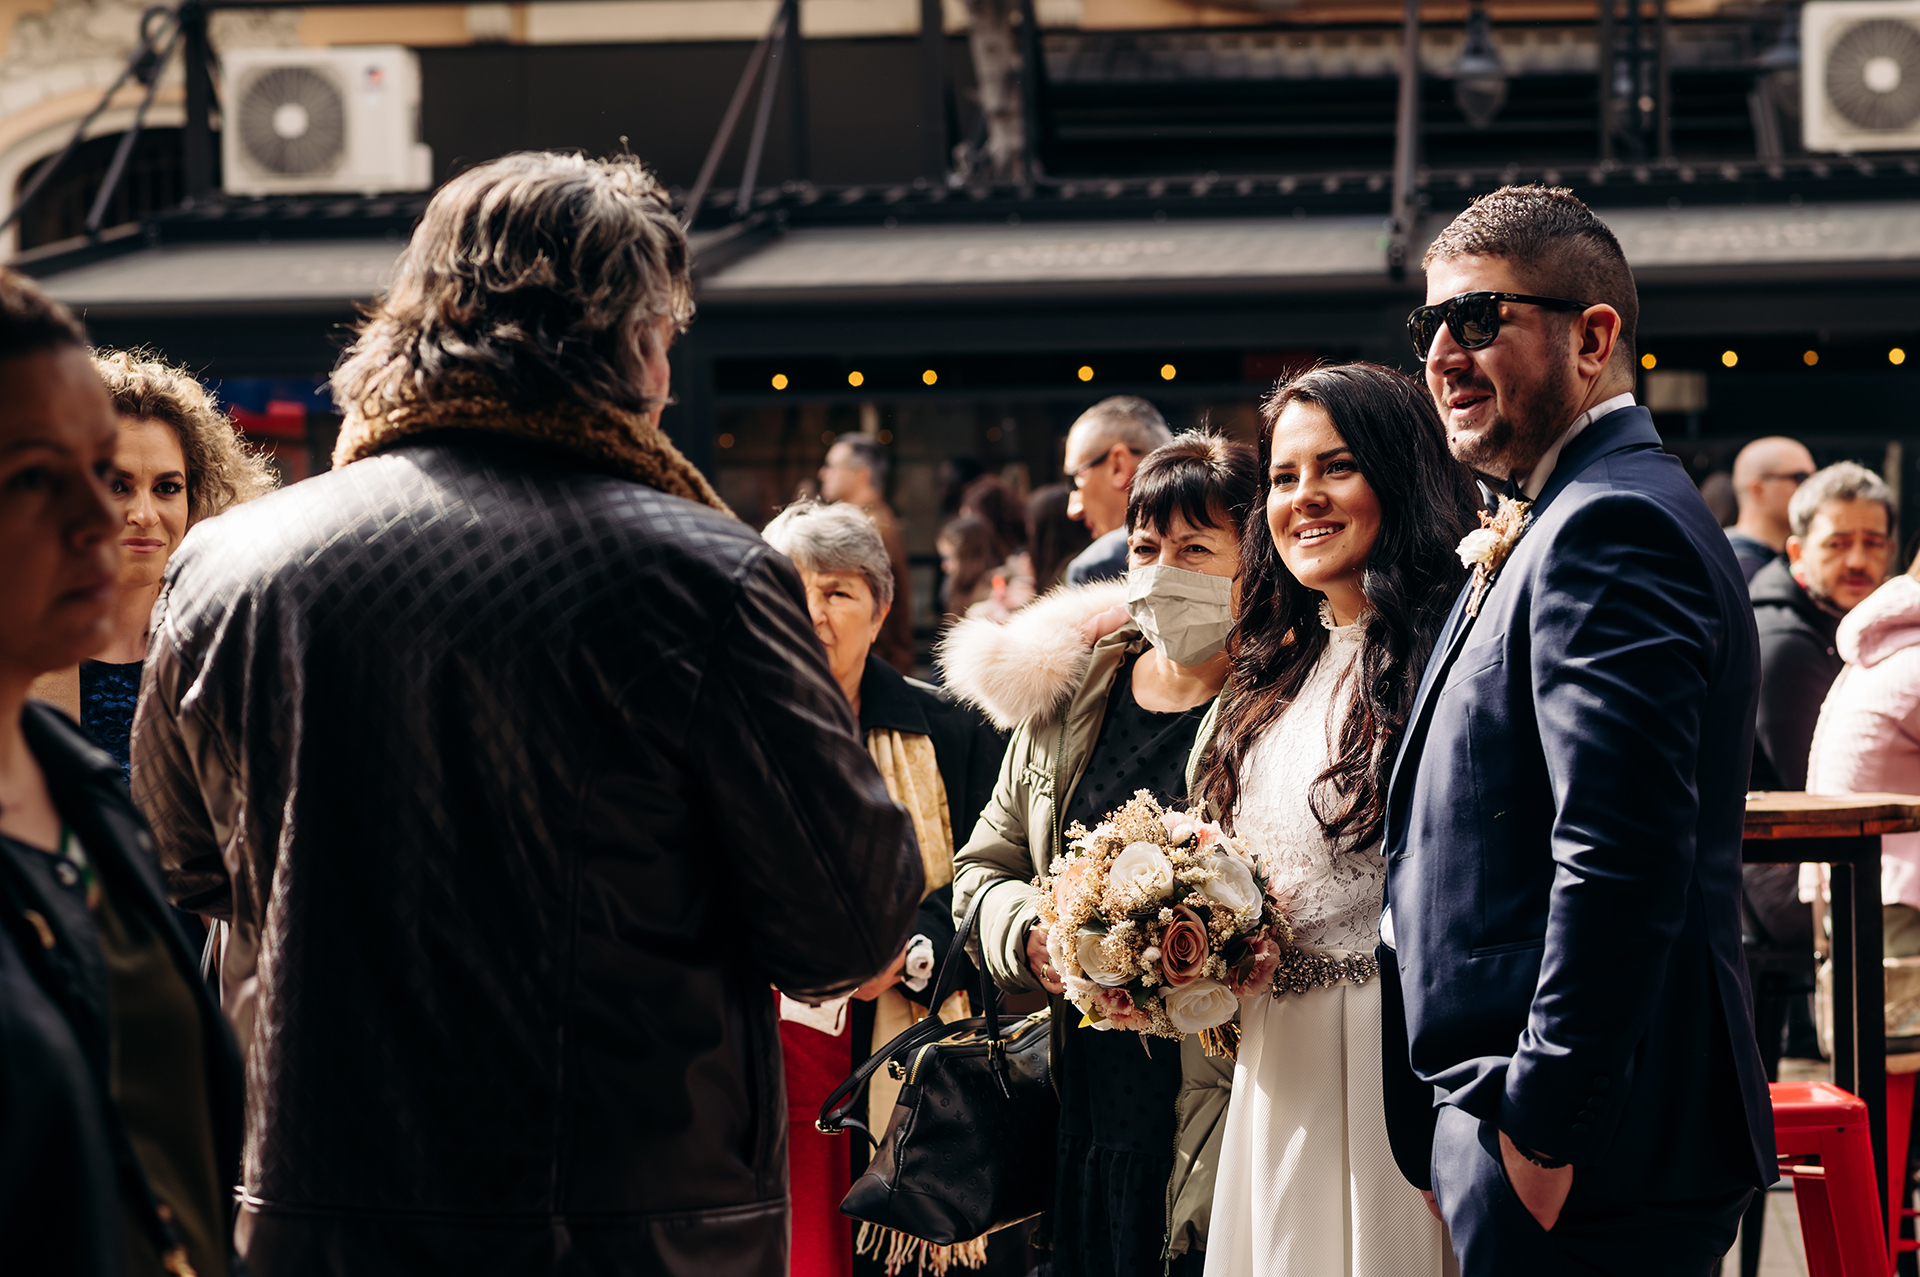 Wedding Photographer from Bulgaria | The bride and groom receive instructions from the man at the ritual hall